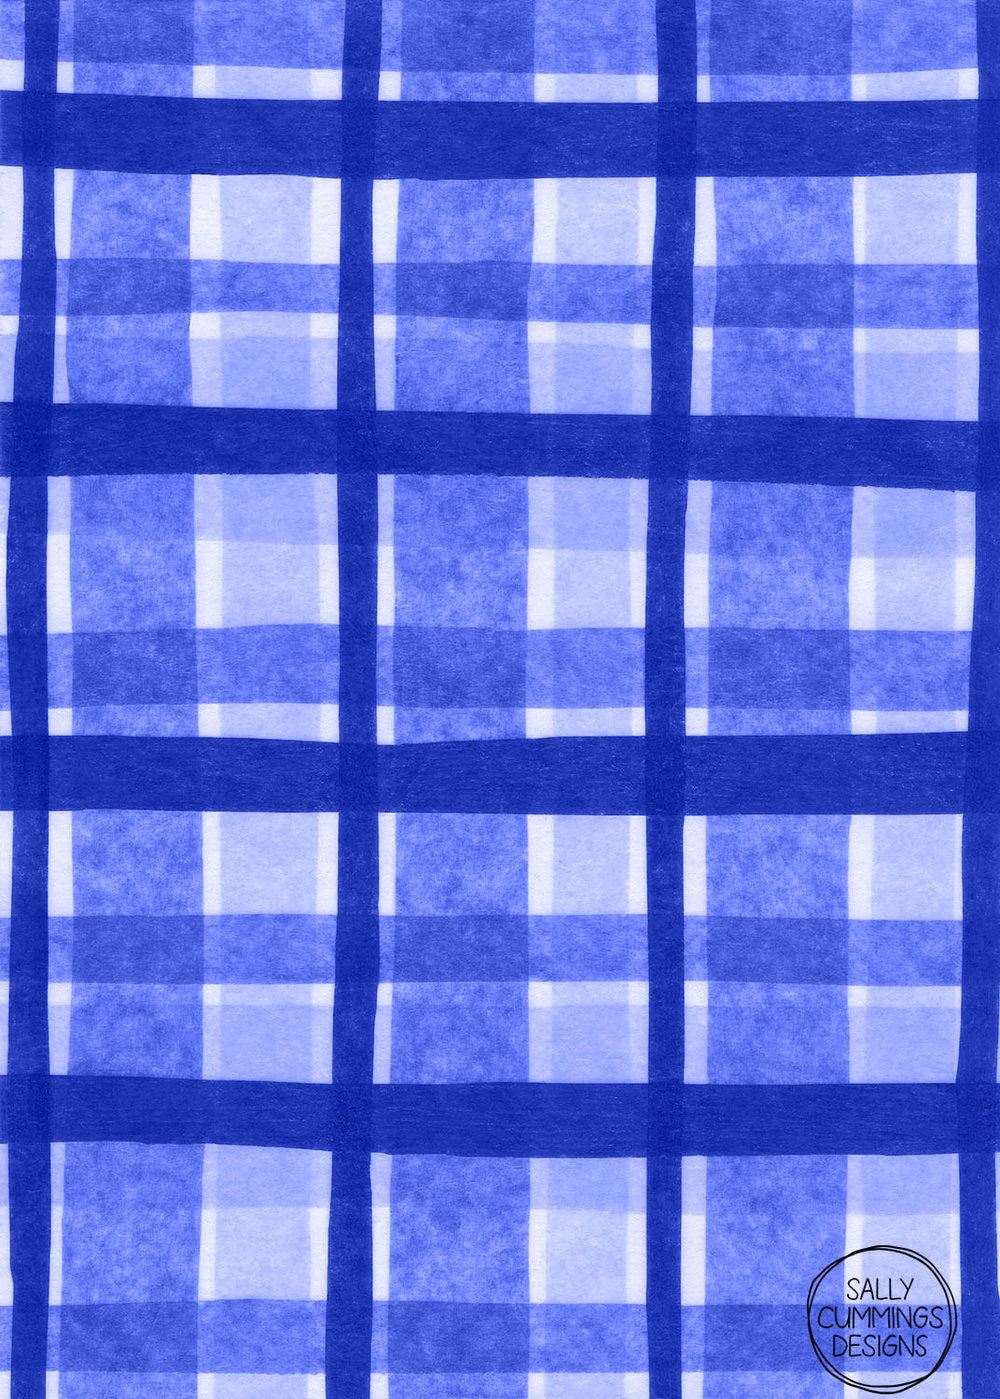 Sally Cummings Designs - Tissue Paper Plaid pattern (blue)